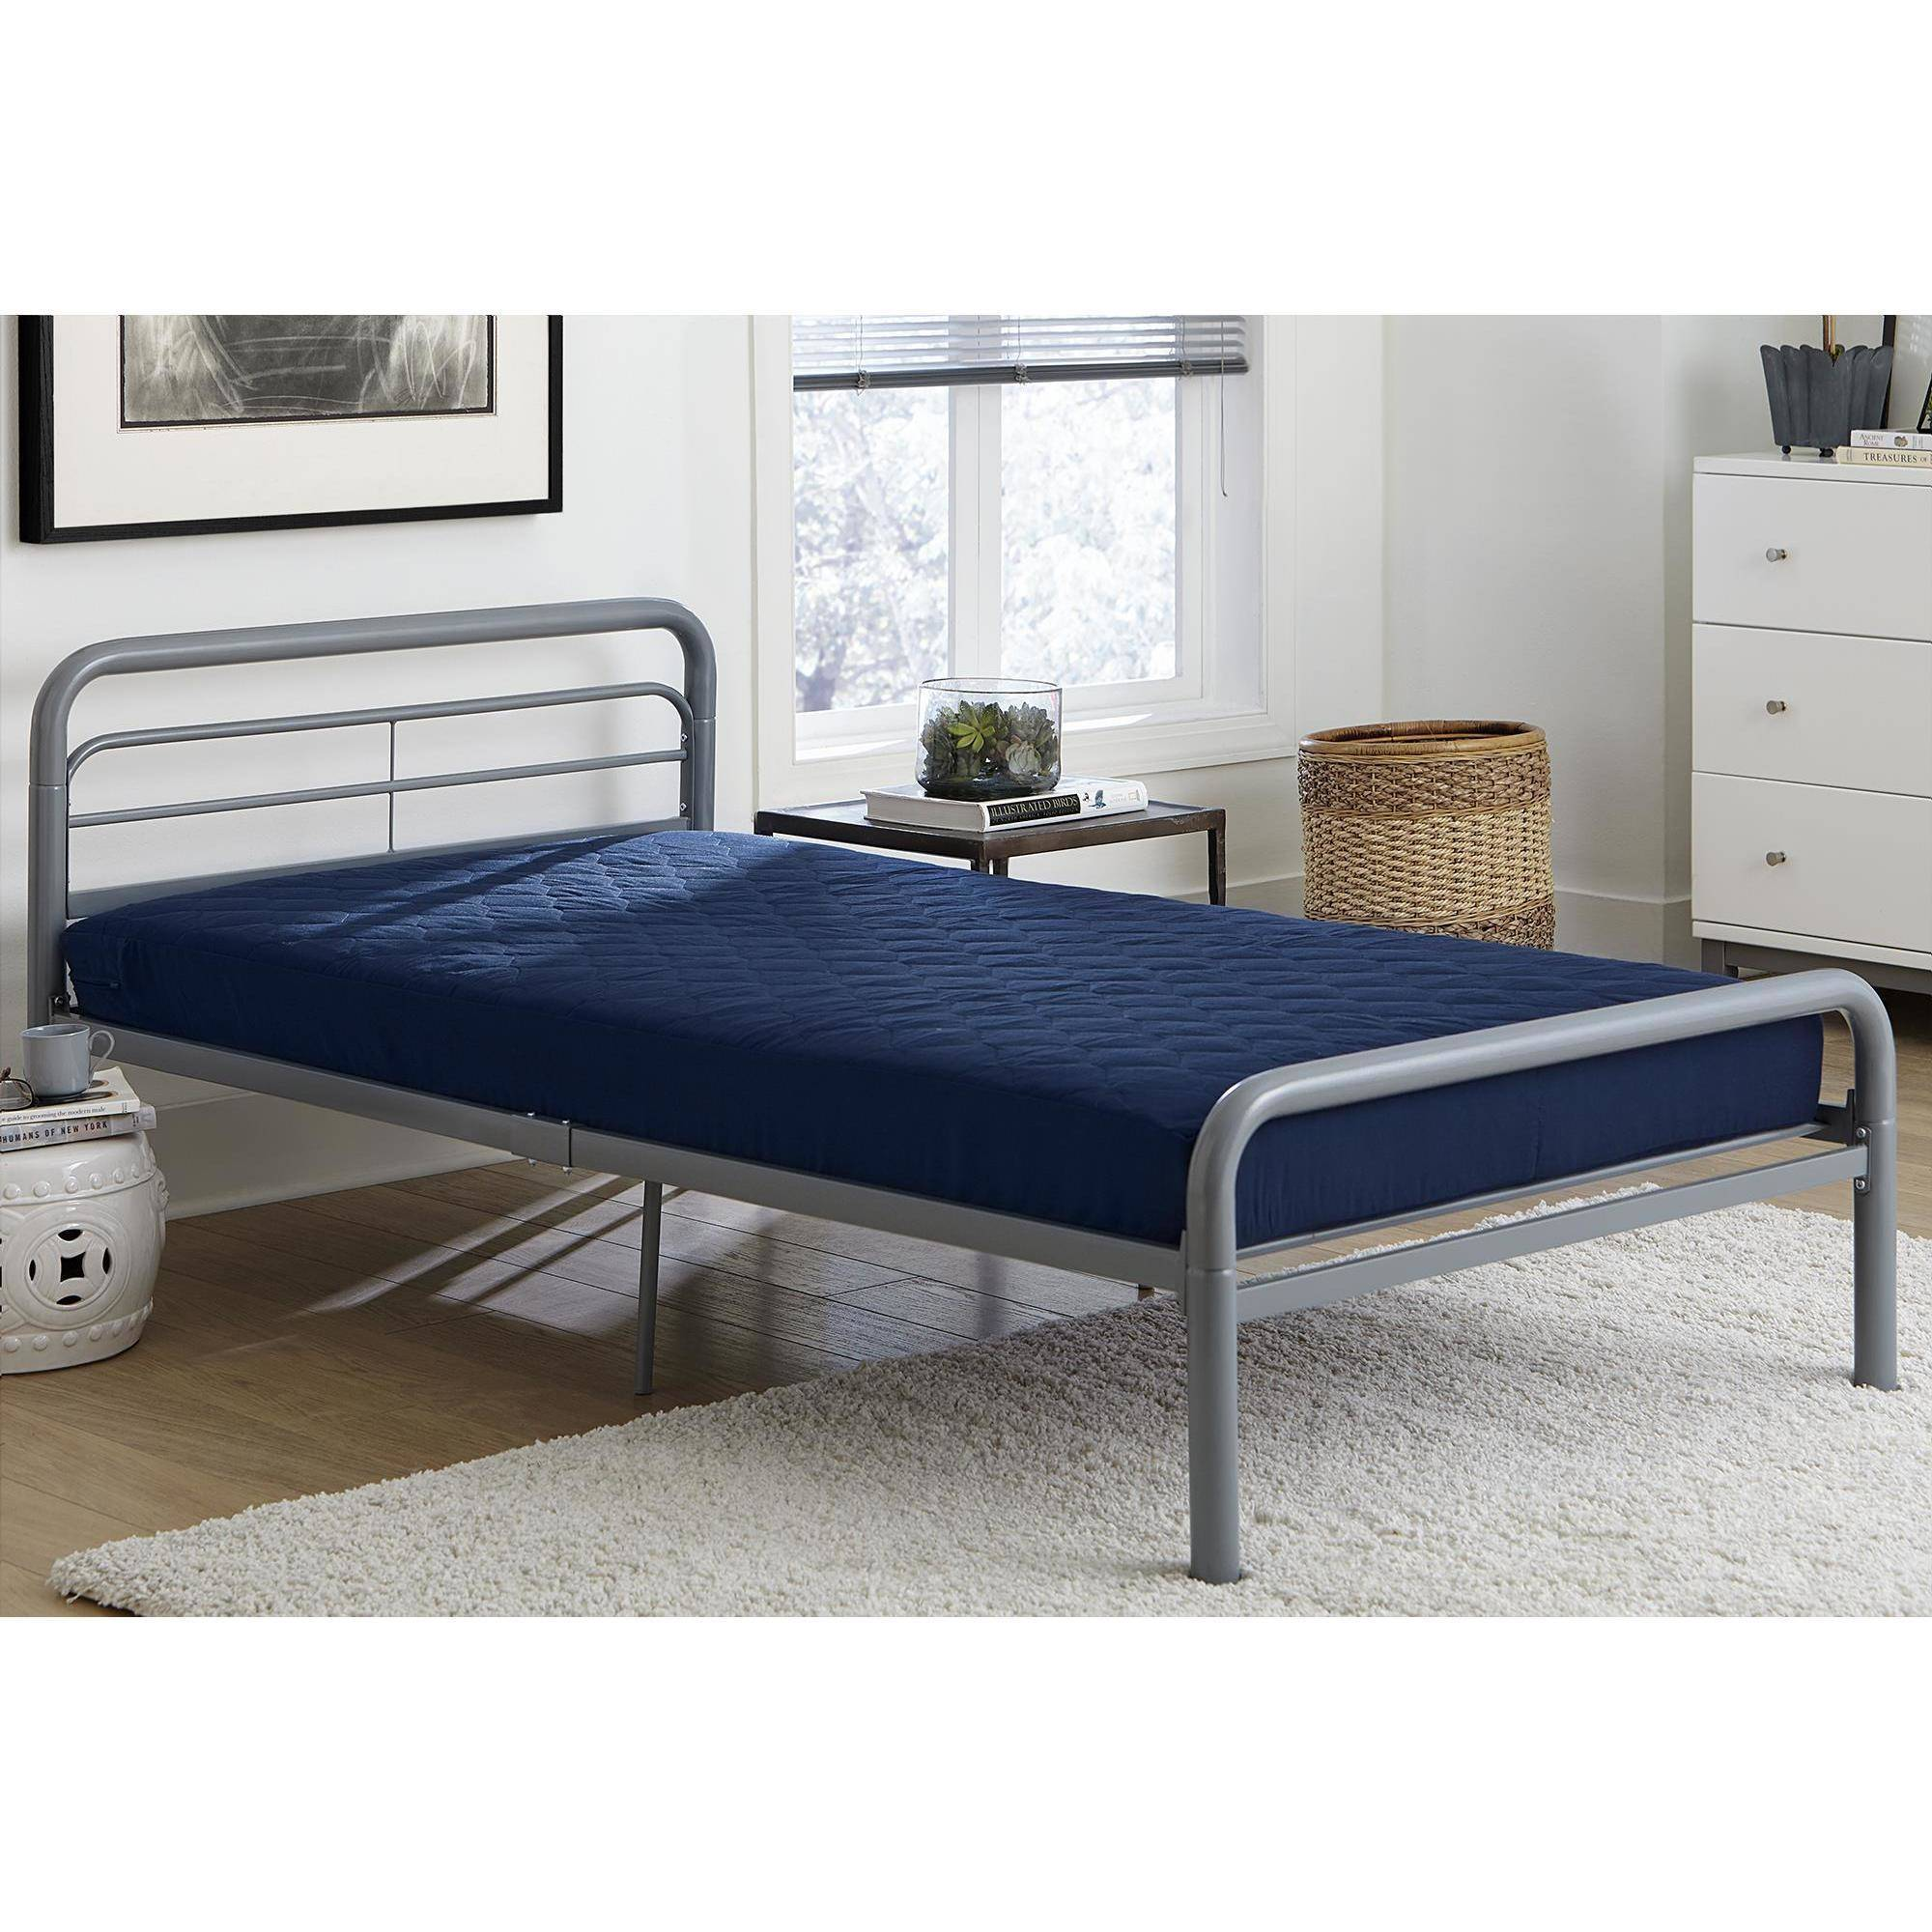 walmart full size beds - Bare.bearsbackyard.co